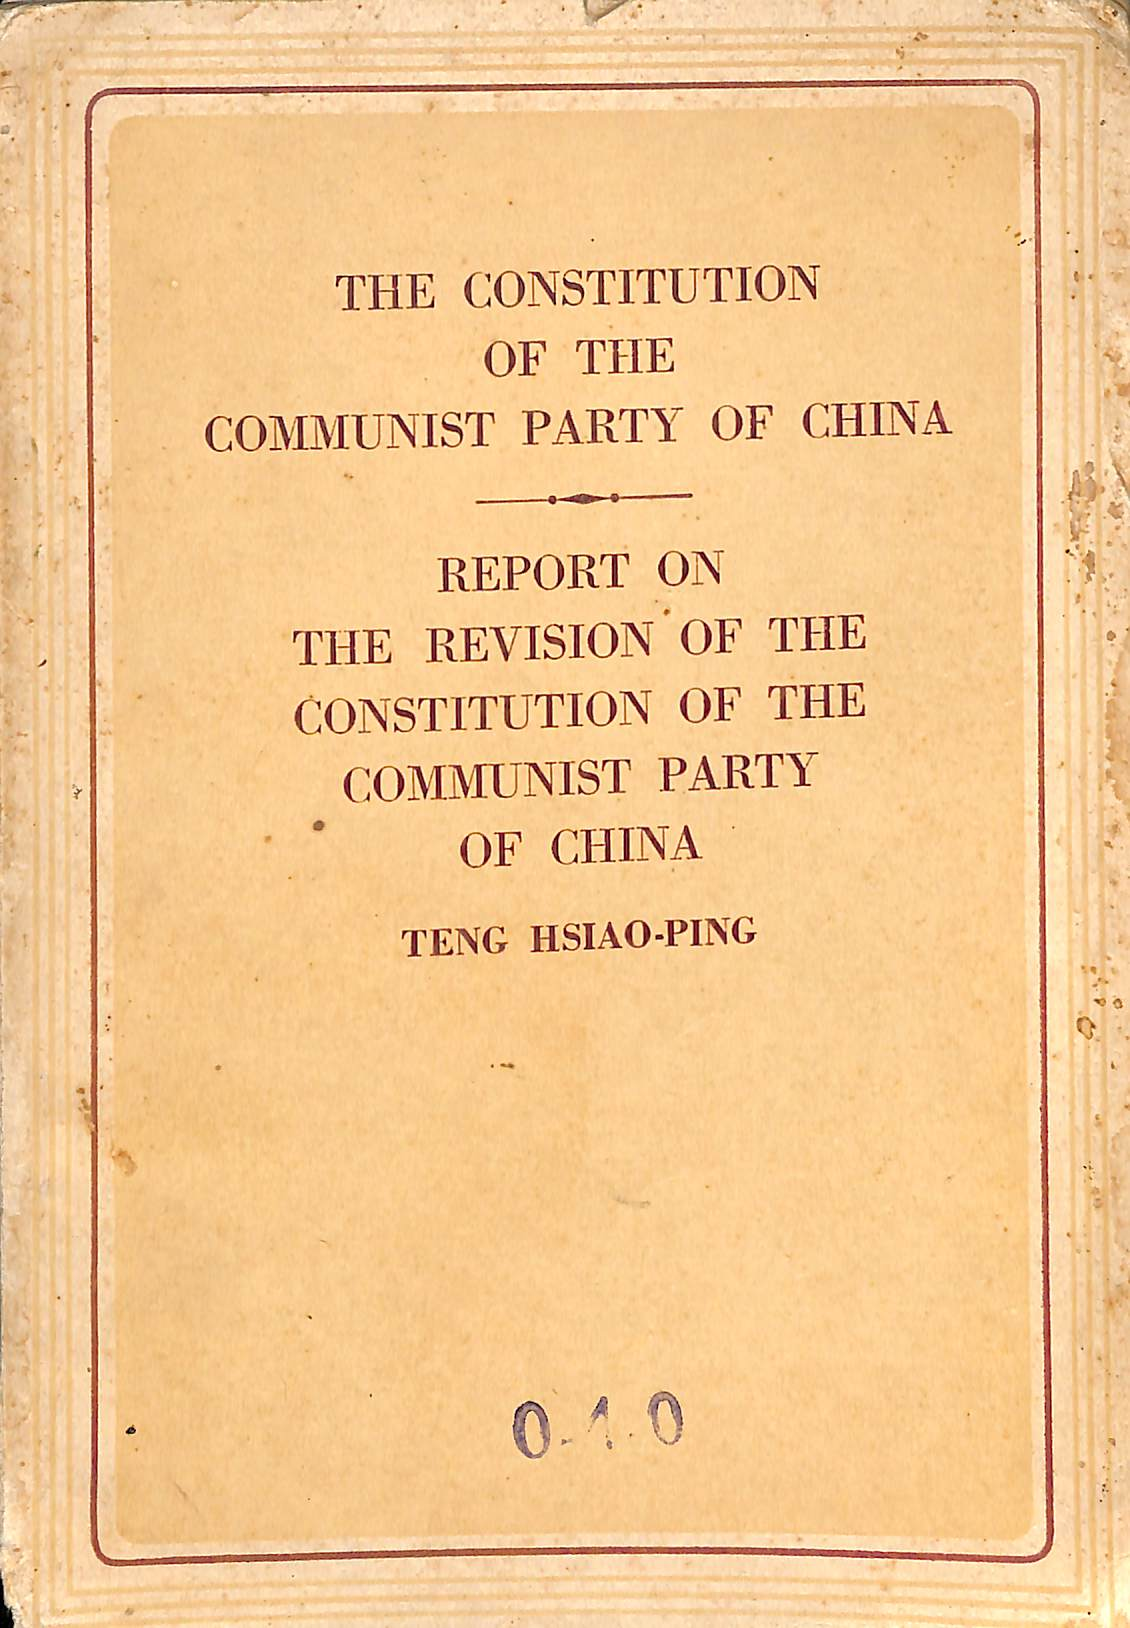 The Constion of the communist party of china